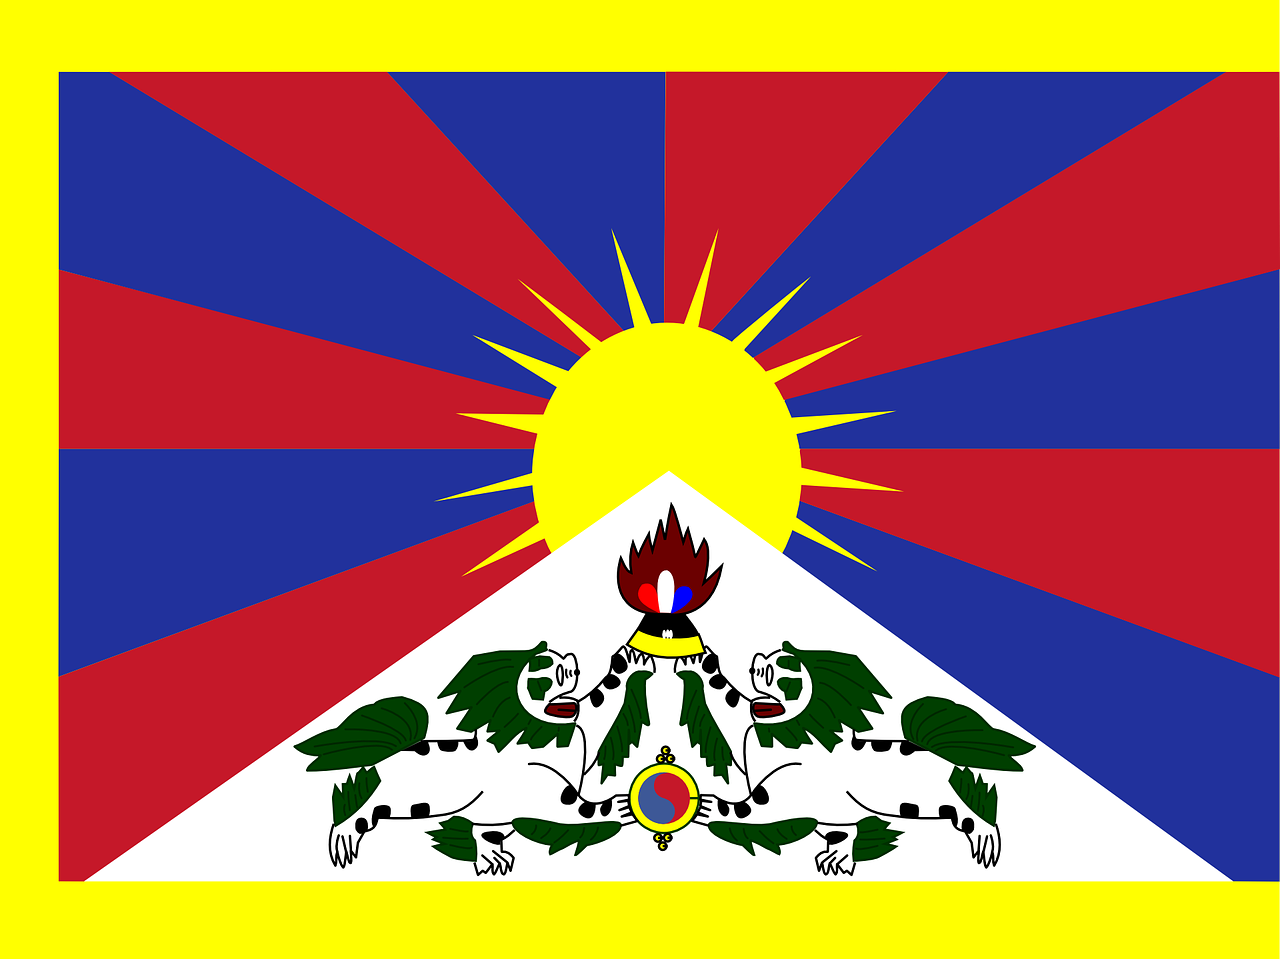 tibet flag independence movement free photo